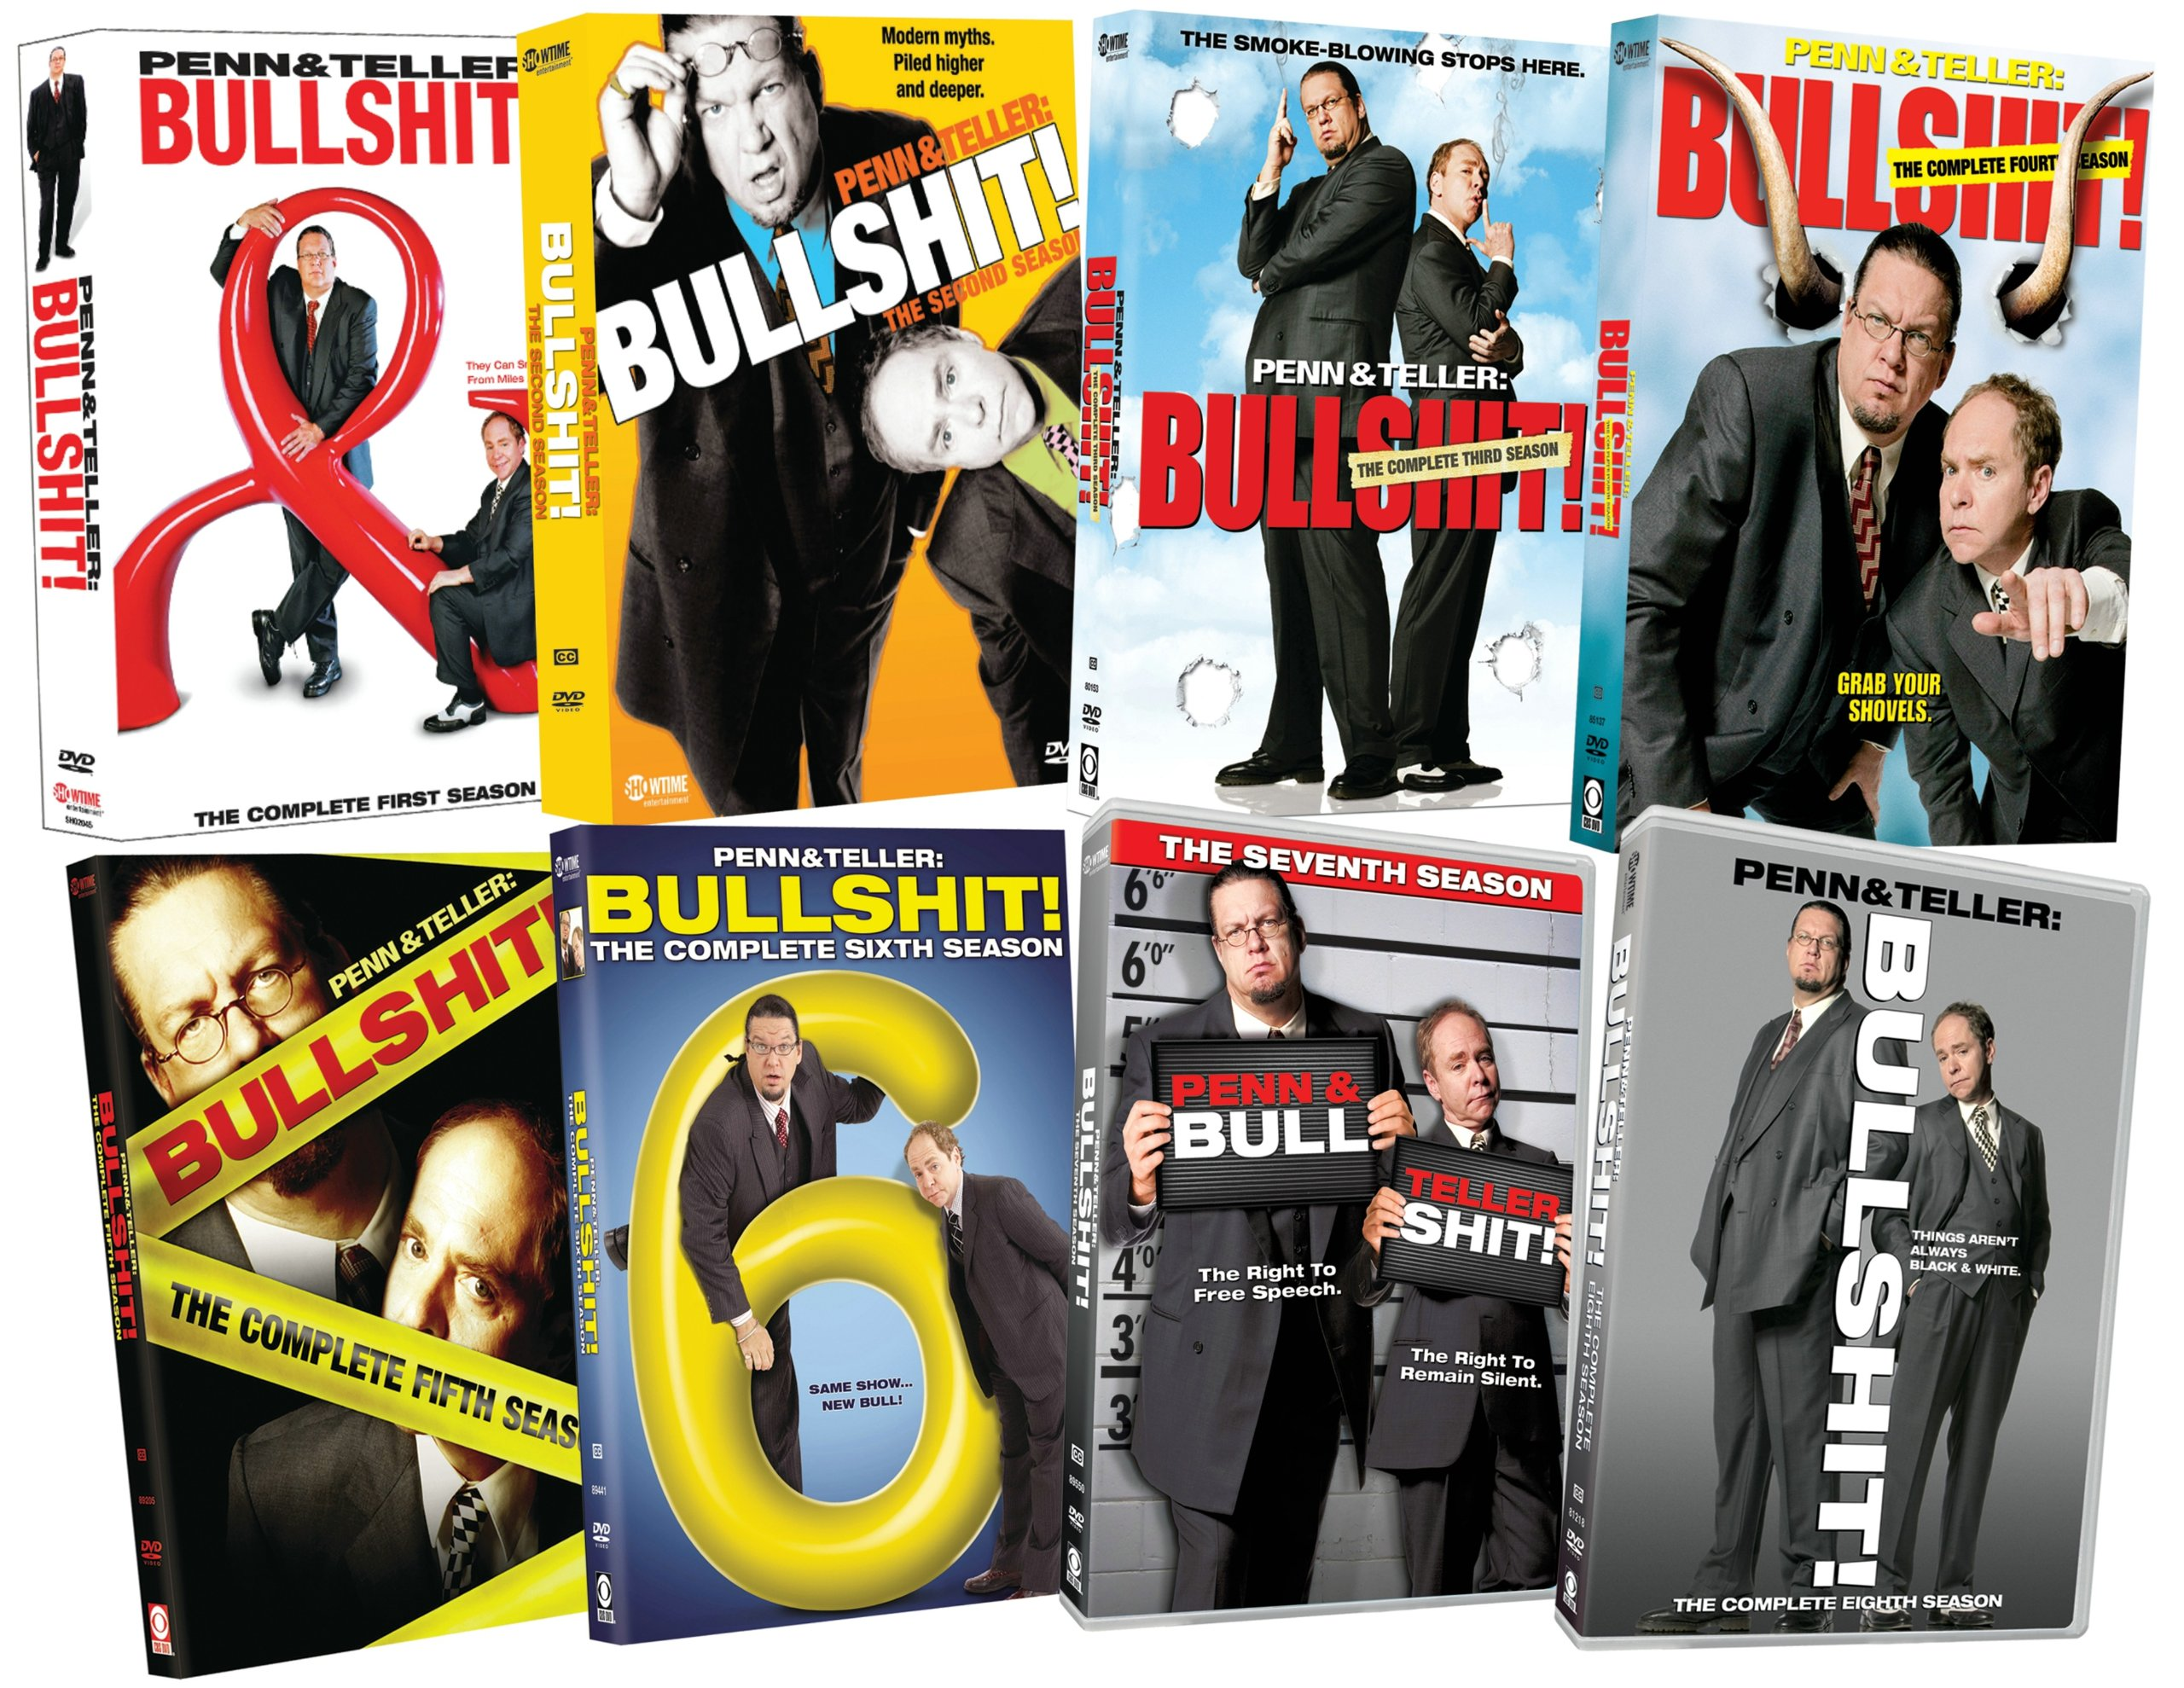 Penn & Teller: Bullshit!: Eight Season Pack by Paramount Home Entertainment